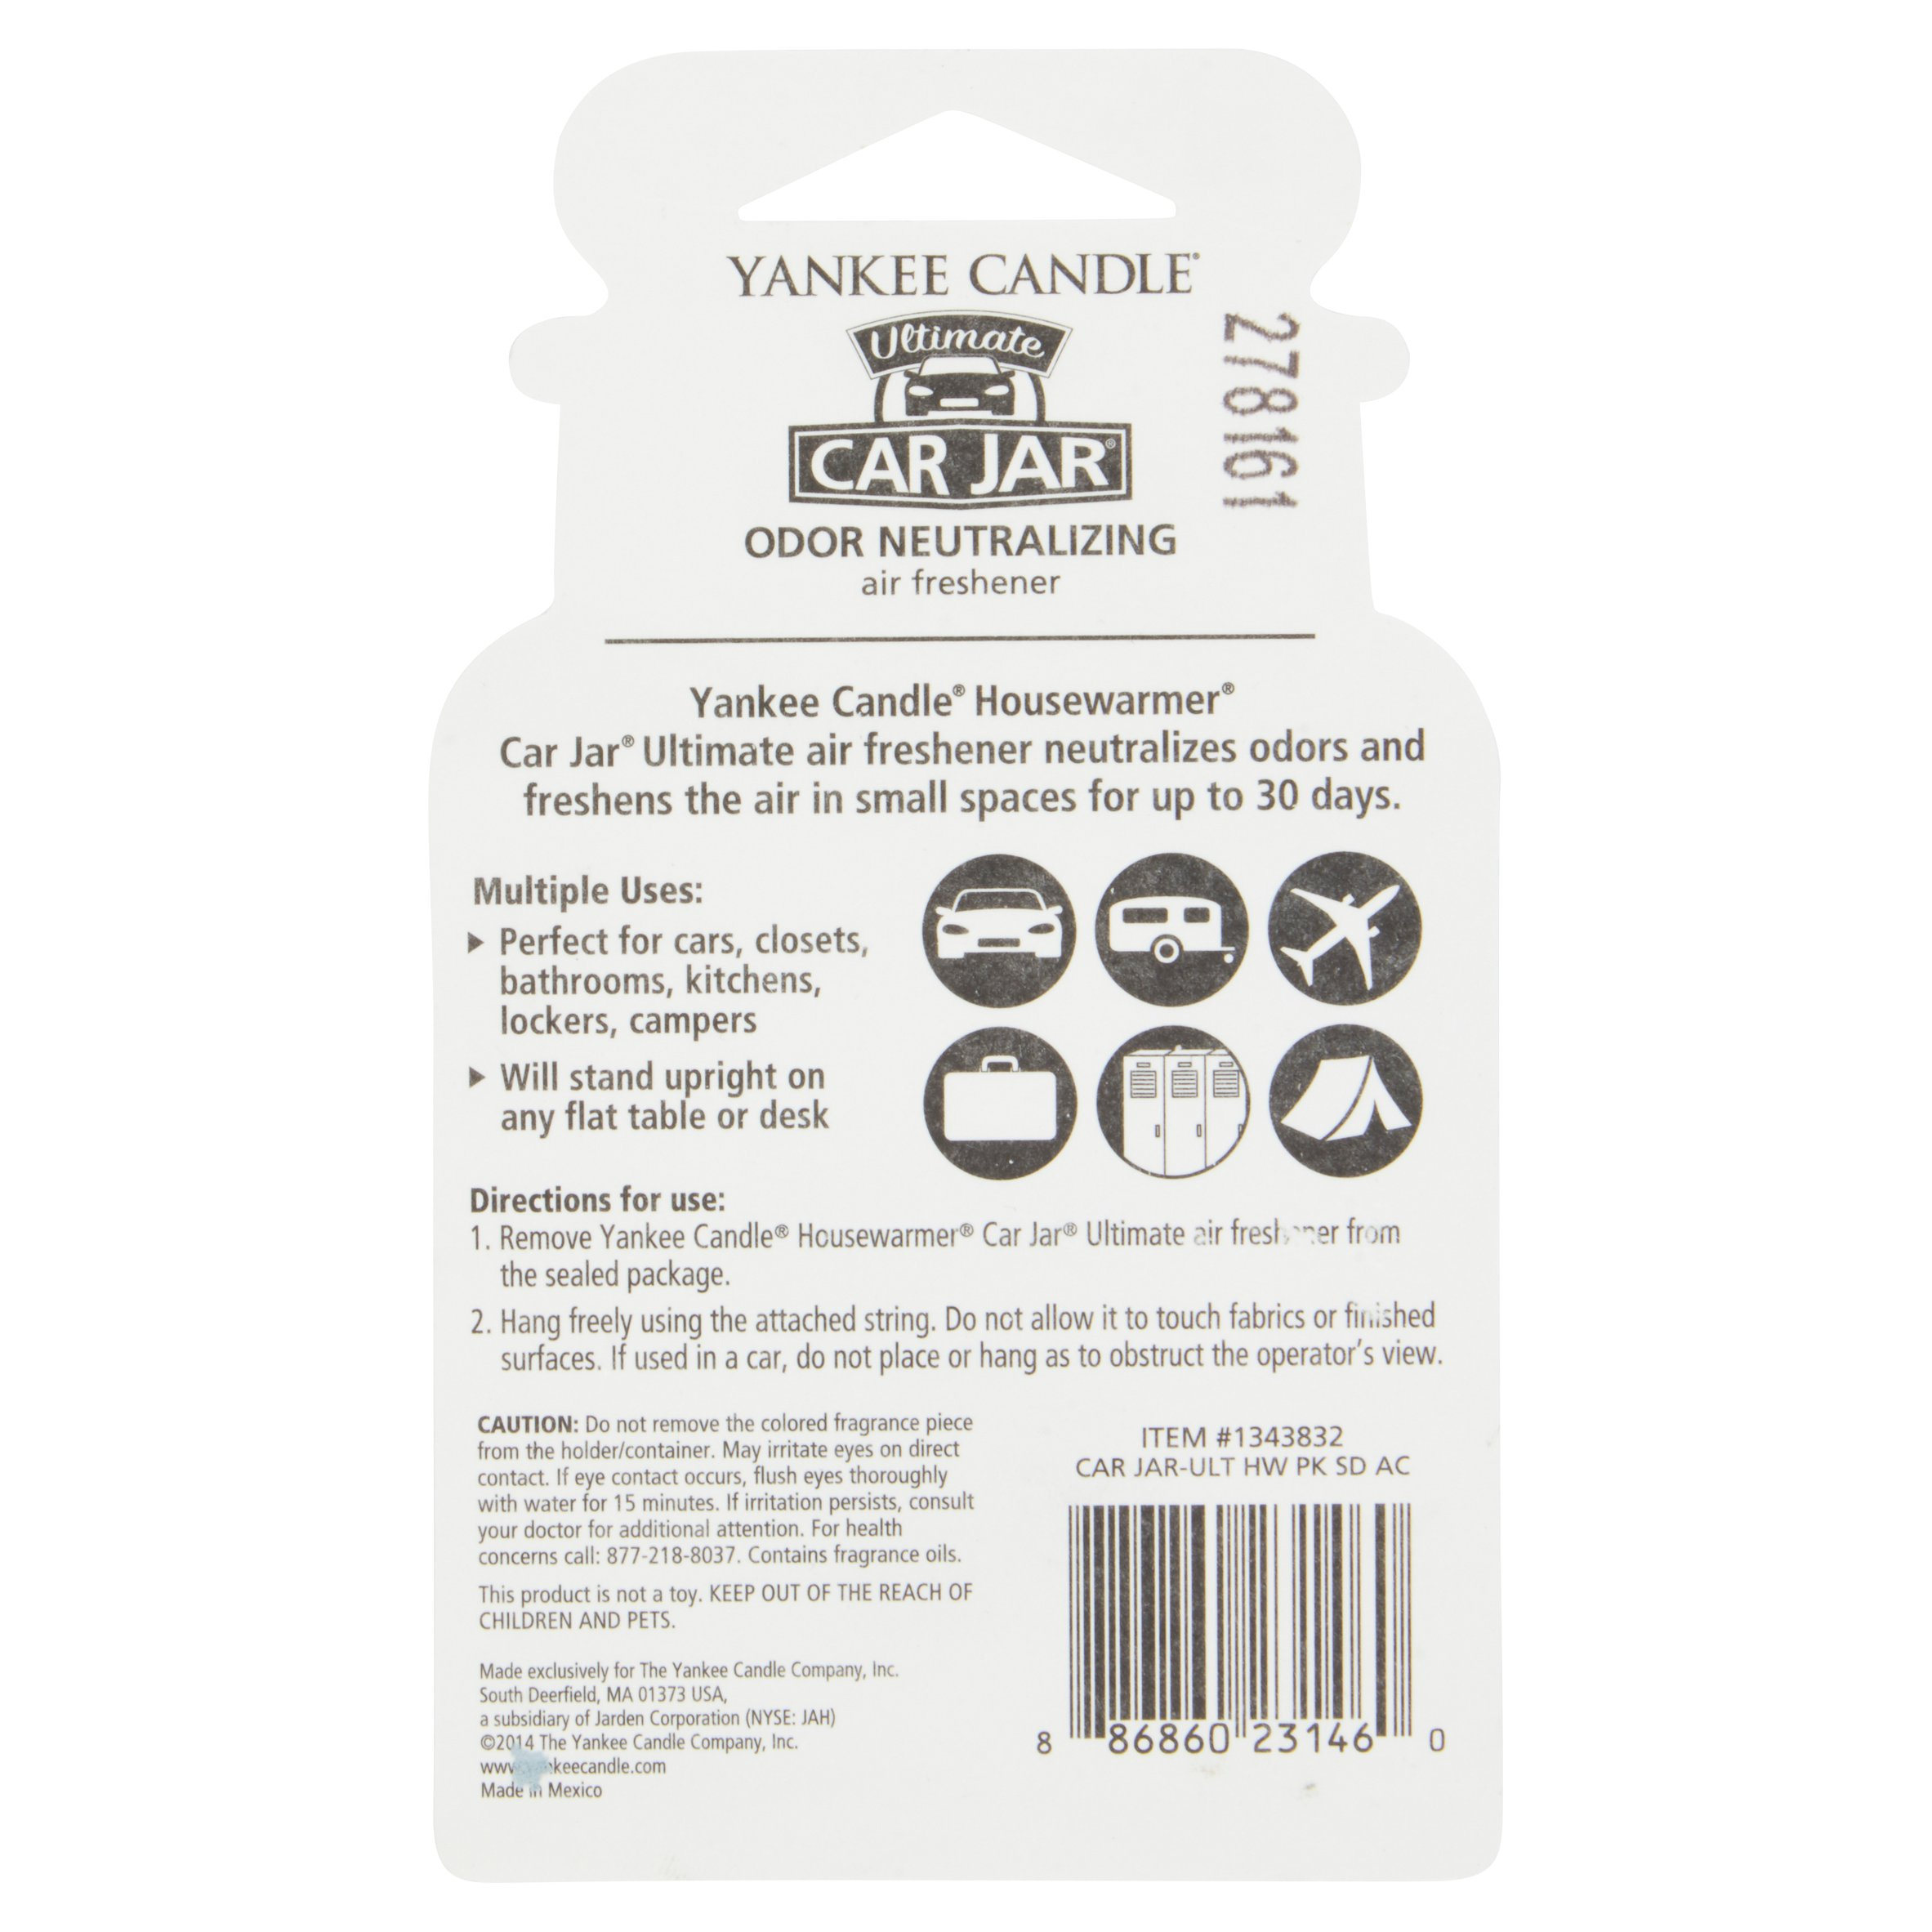 Yankee Candle Country Kitchen Yankee Candle Ultimate Car Jar Pink Sands Air Freshener Walmartcom